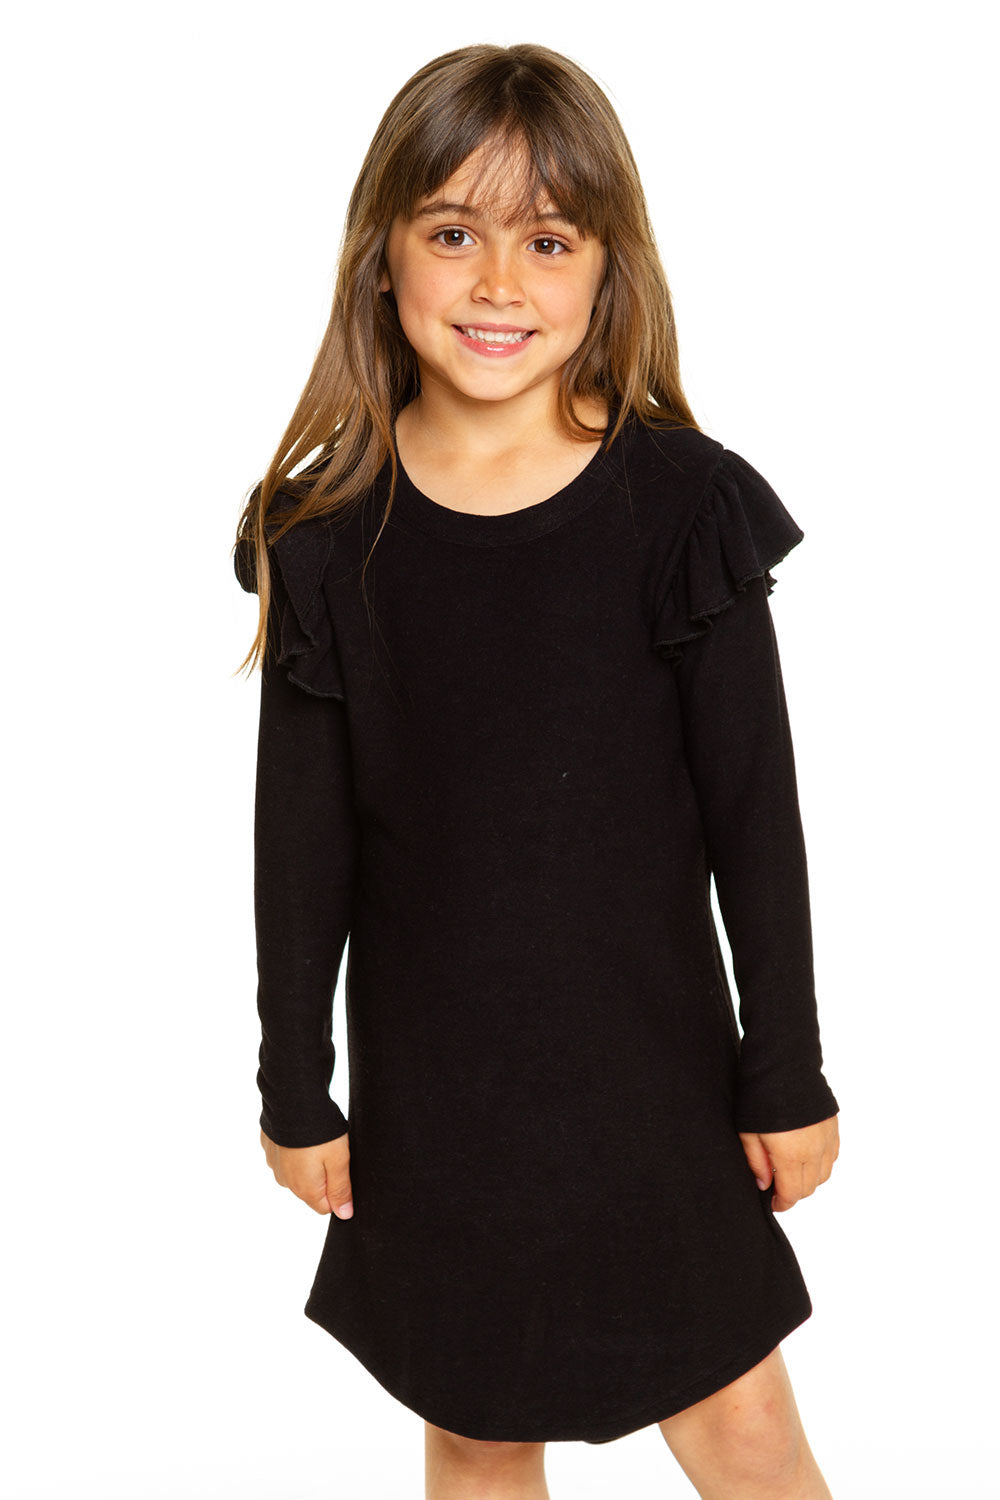 Girls Cozy Knit Flutter Shirttail Dress GIRLS chaserbrand4.myshopify.com